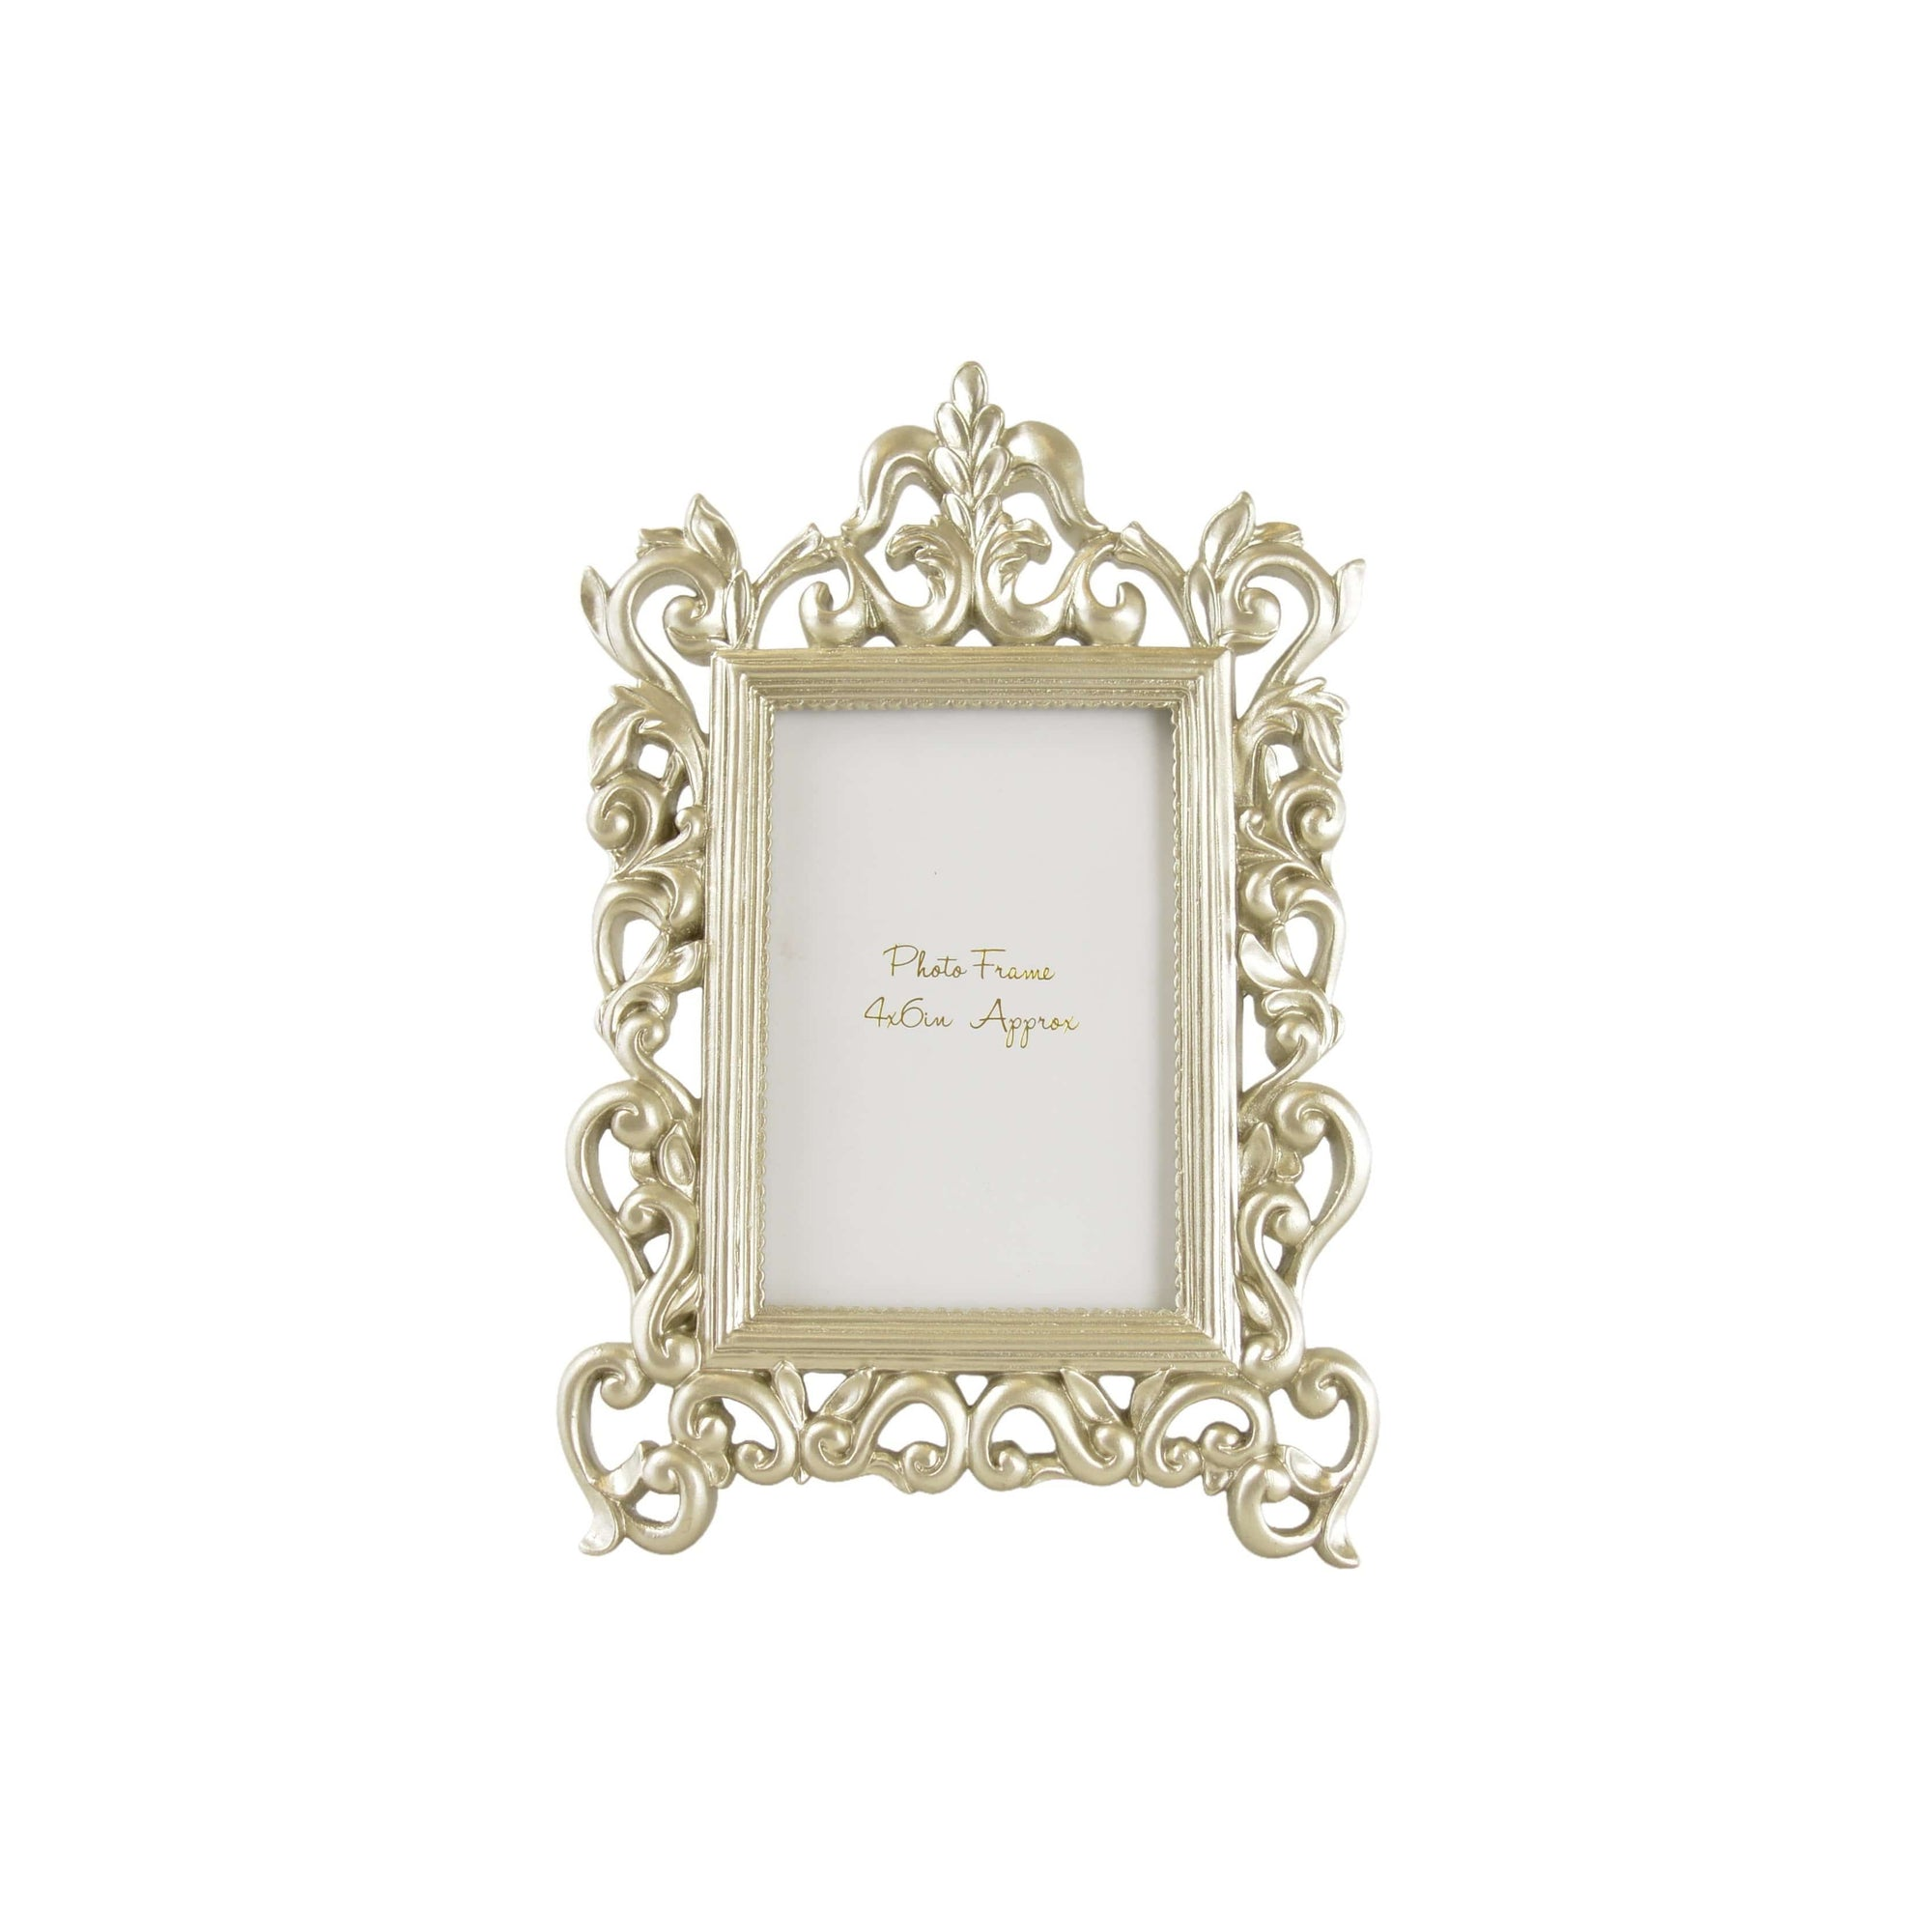 Candlelight Home Photo Frame 4X6' ANTIQUE ORNATE PHOTOFRAME - CHAMPAGNE